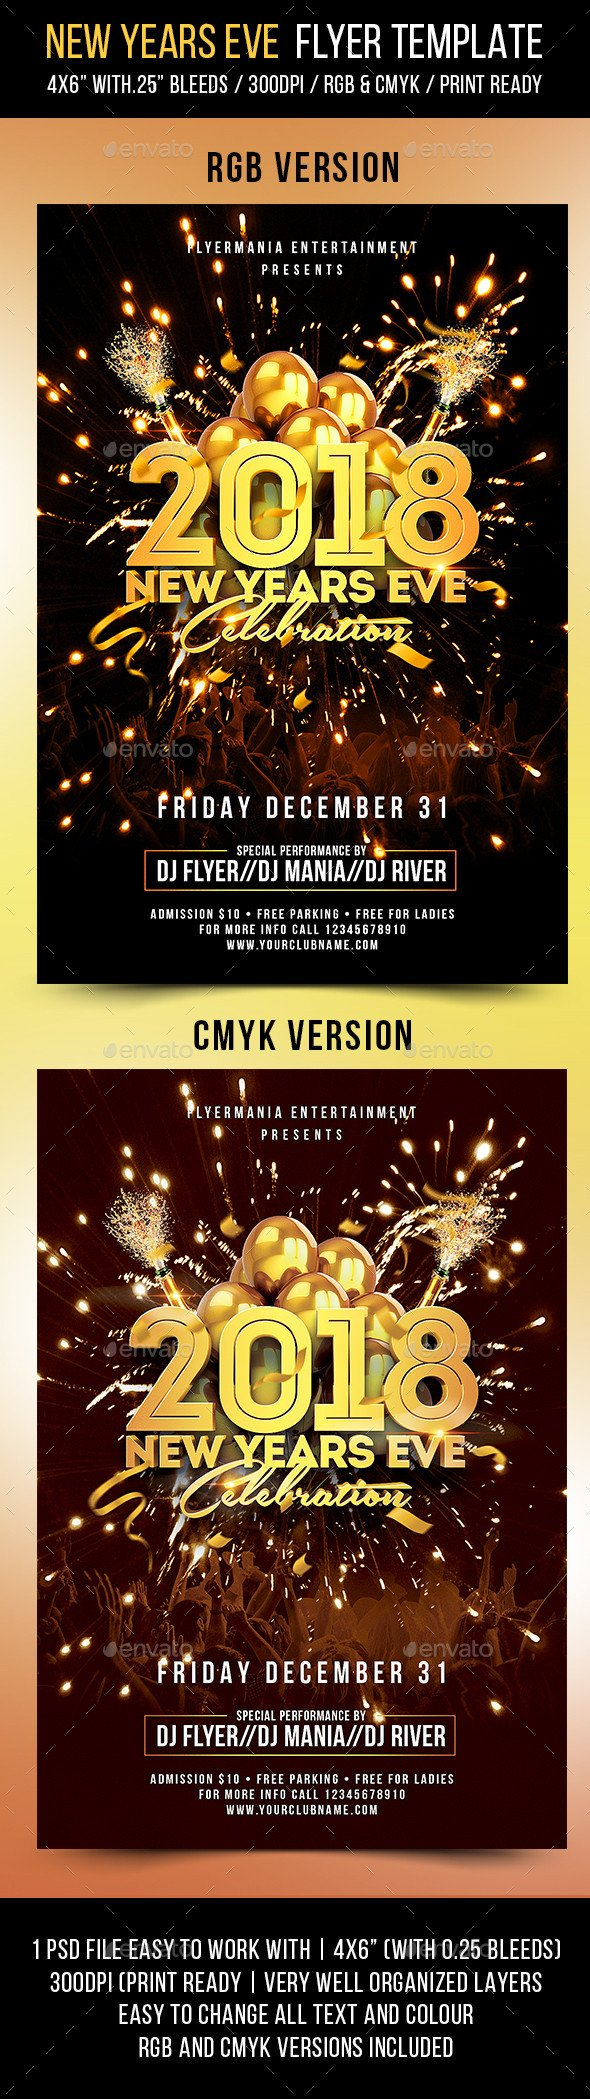 New Year Eve Flyer New Years Eve Flyer Template by Flyermania